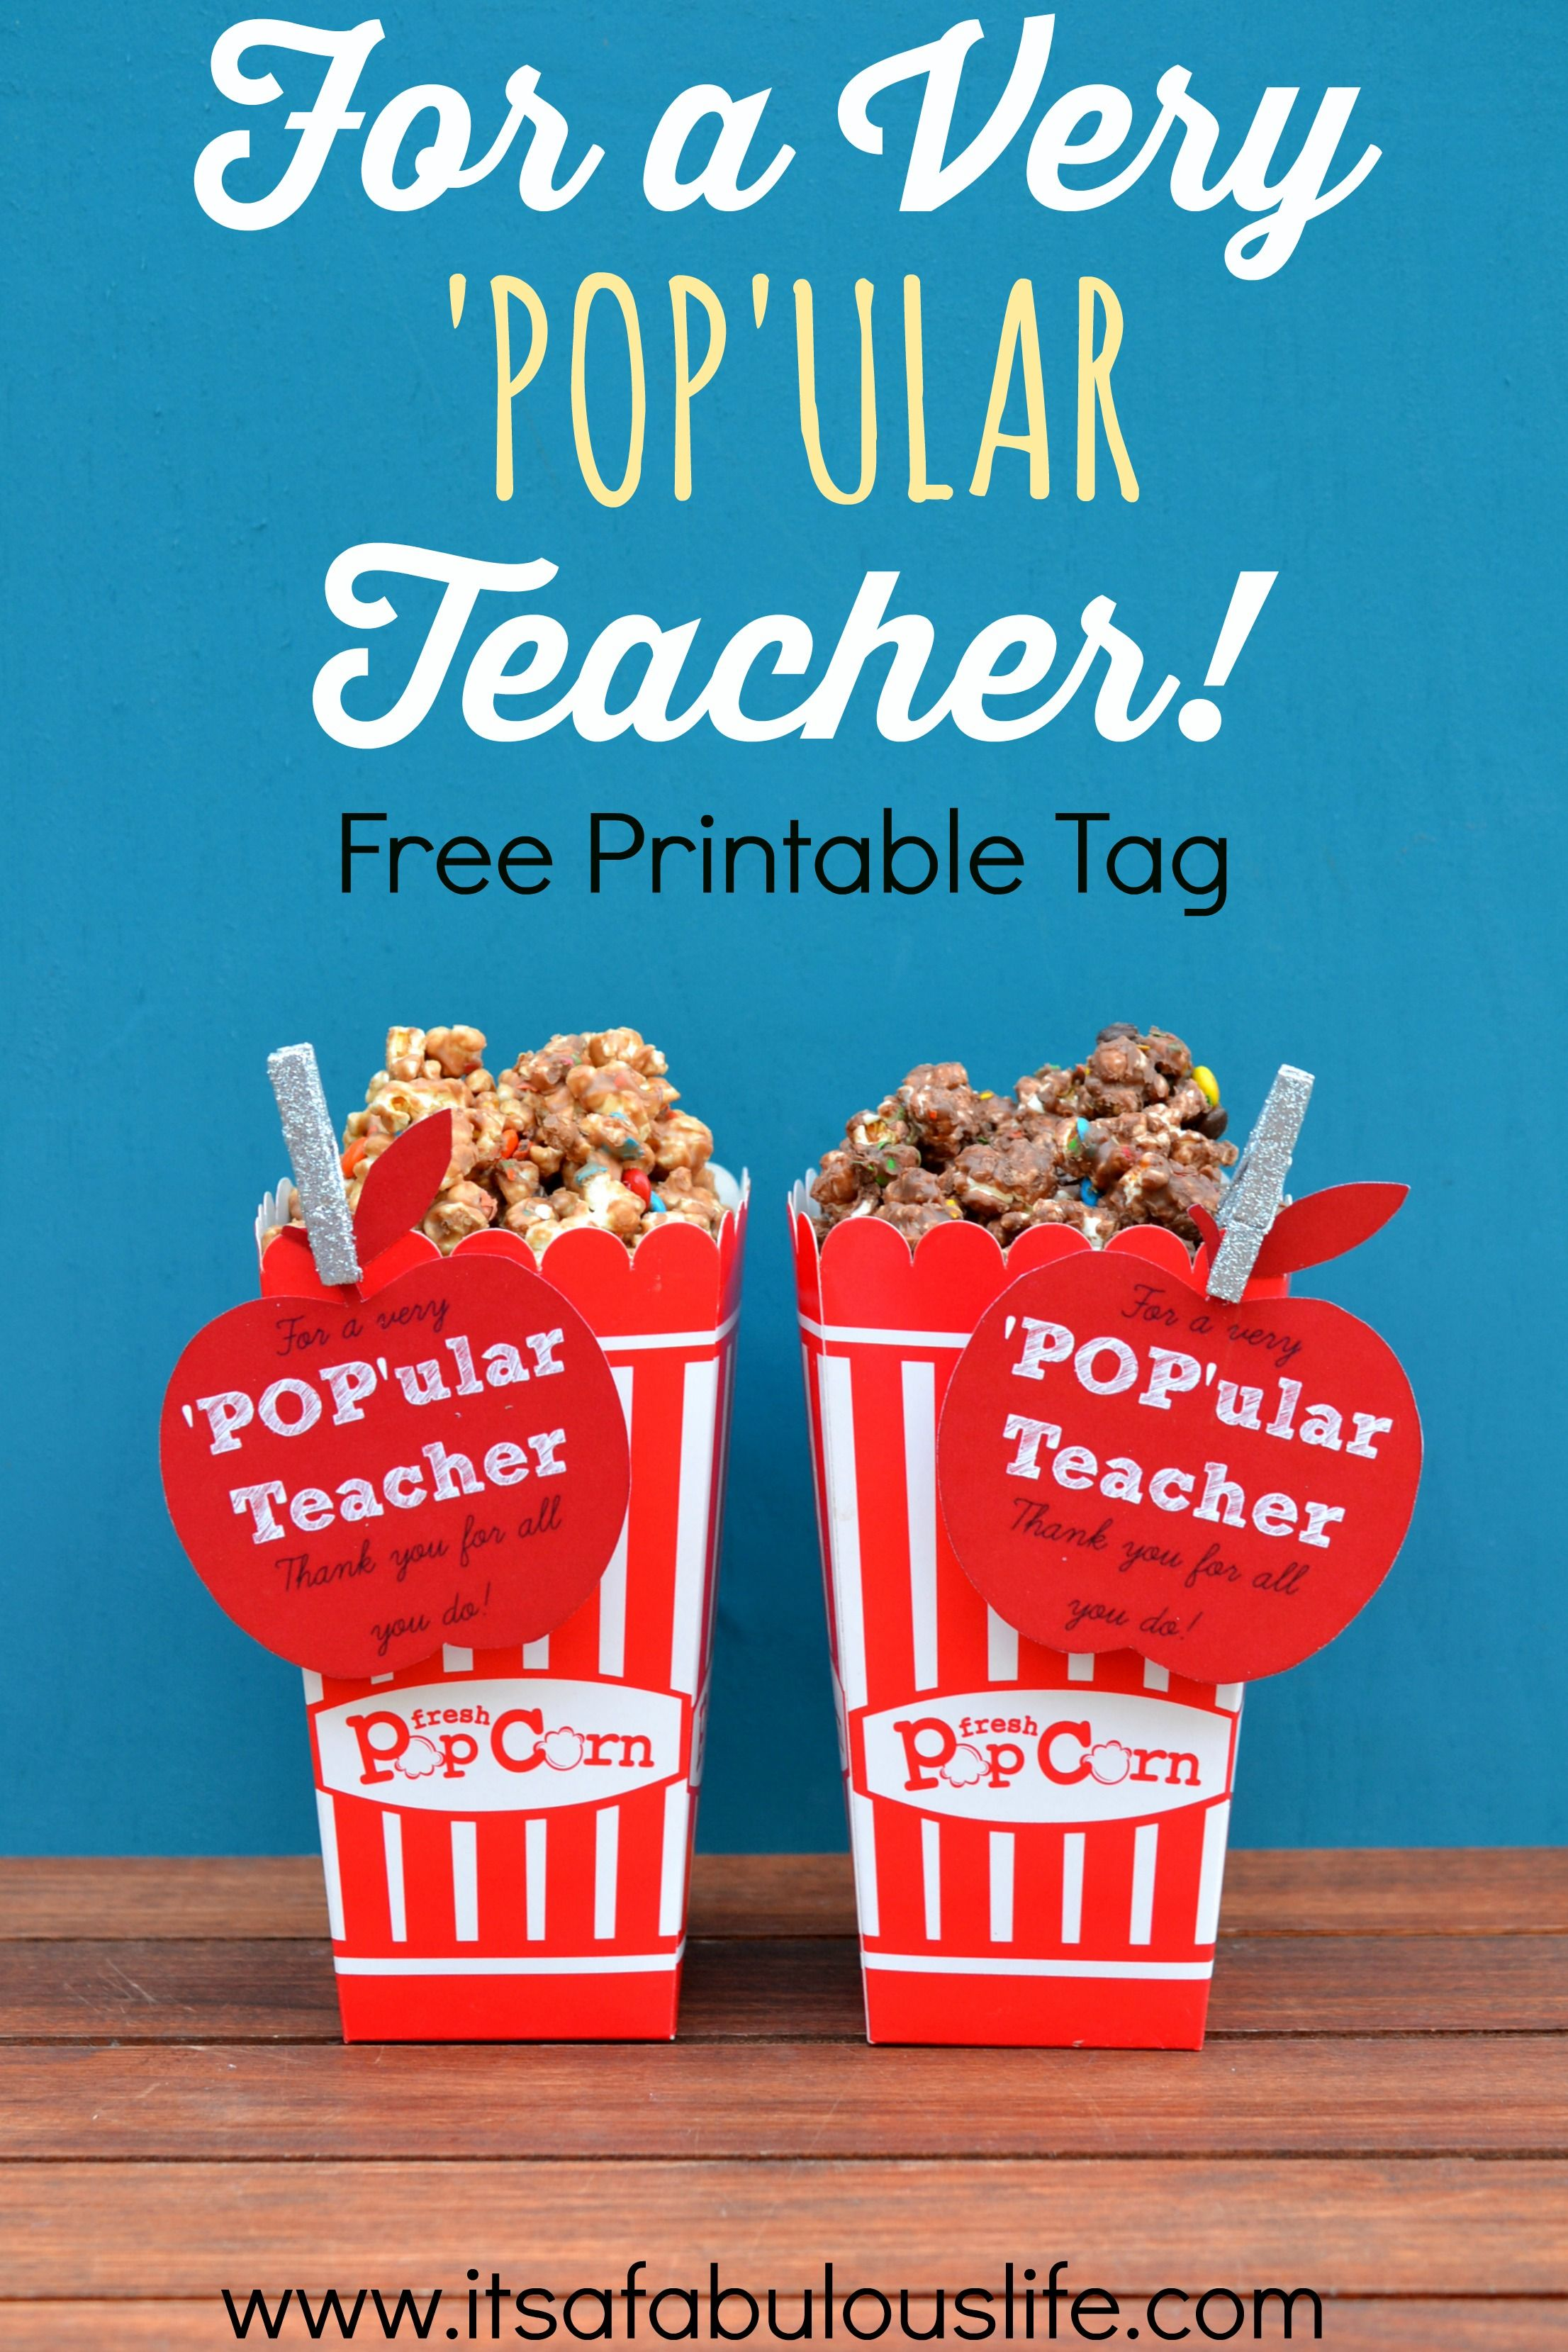 image regarding Popcorn Teacher Appreciation Printable referred to as For A Incredibly Prominent Trainer Free of charge Printable Tag for Instructor